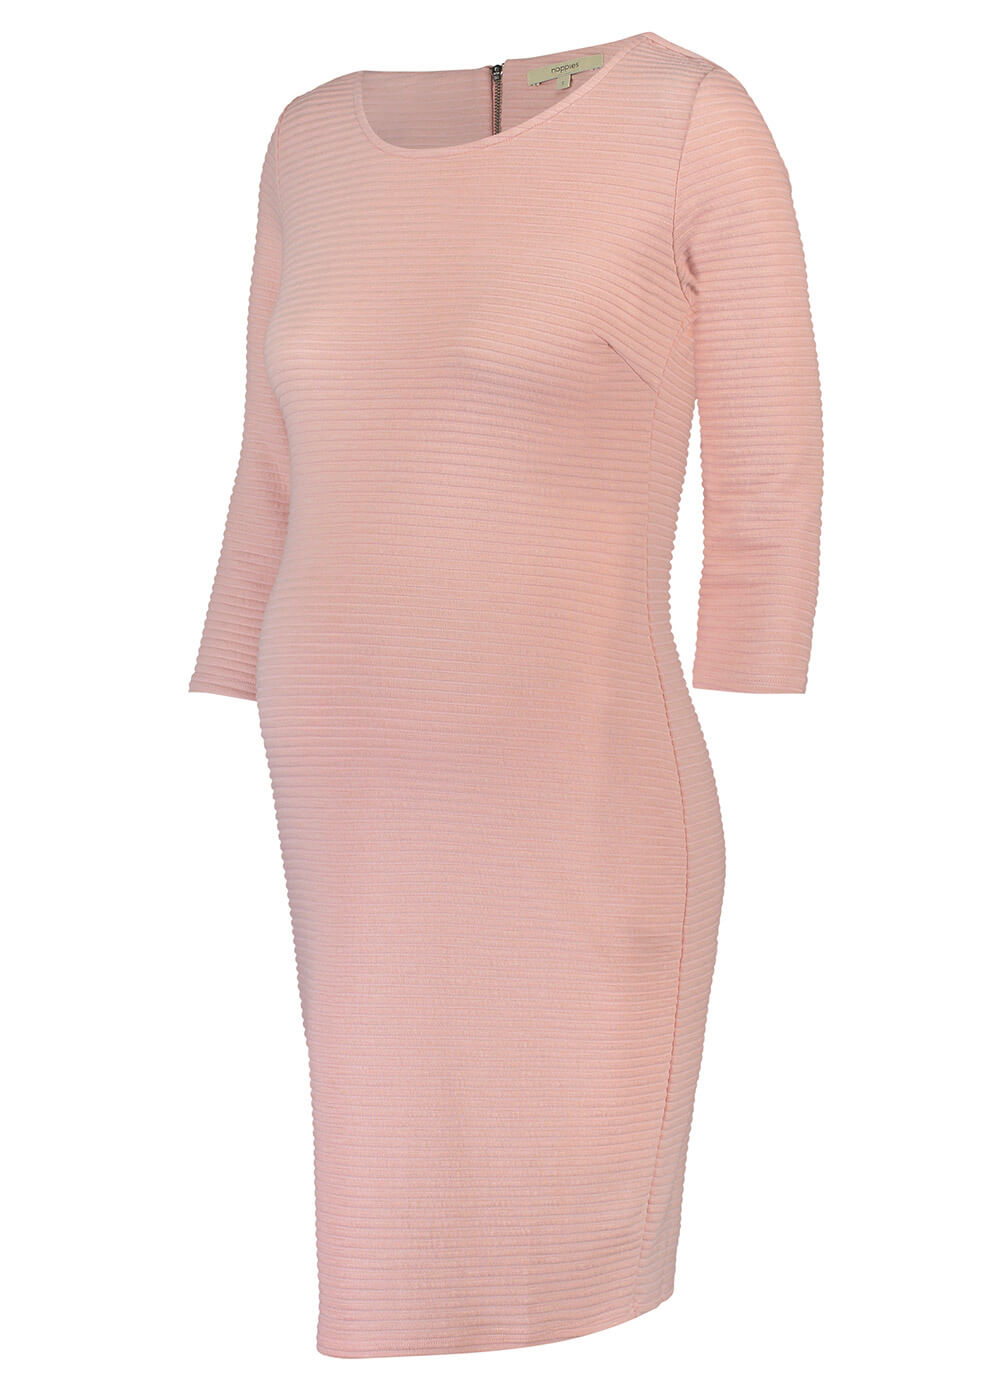 Zinnia Textured Ribbed Pregnancy Dress in Peach by Noppies